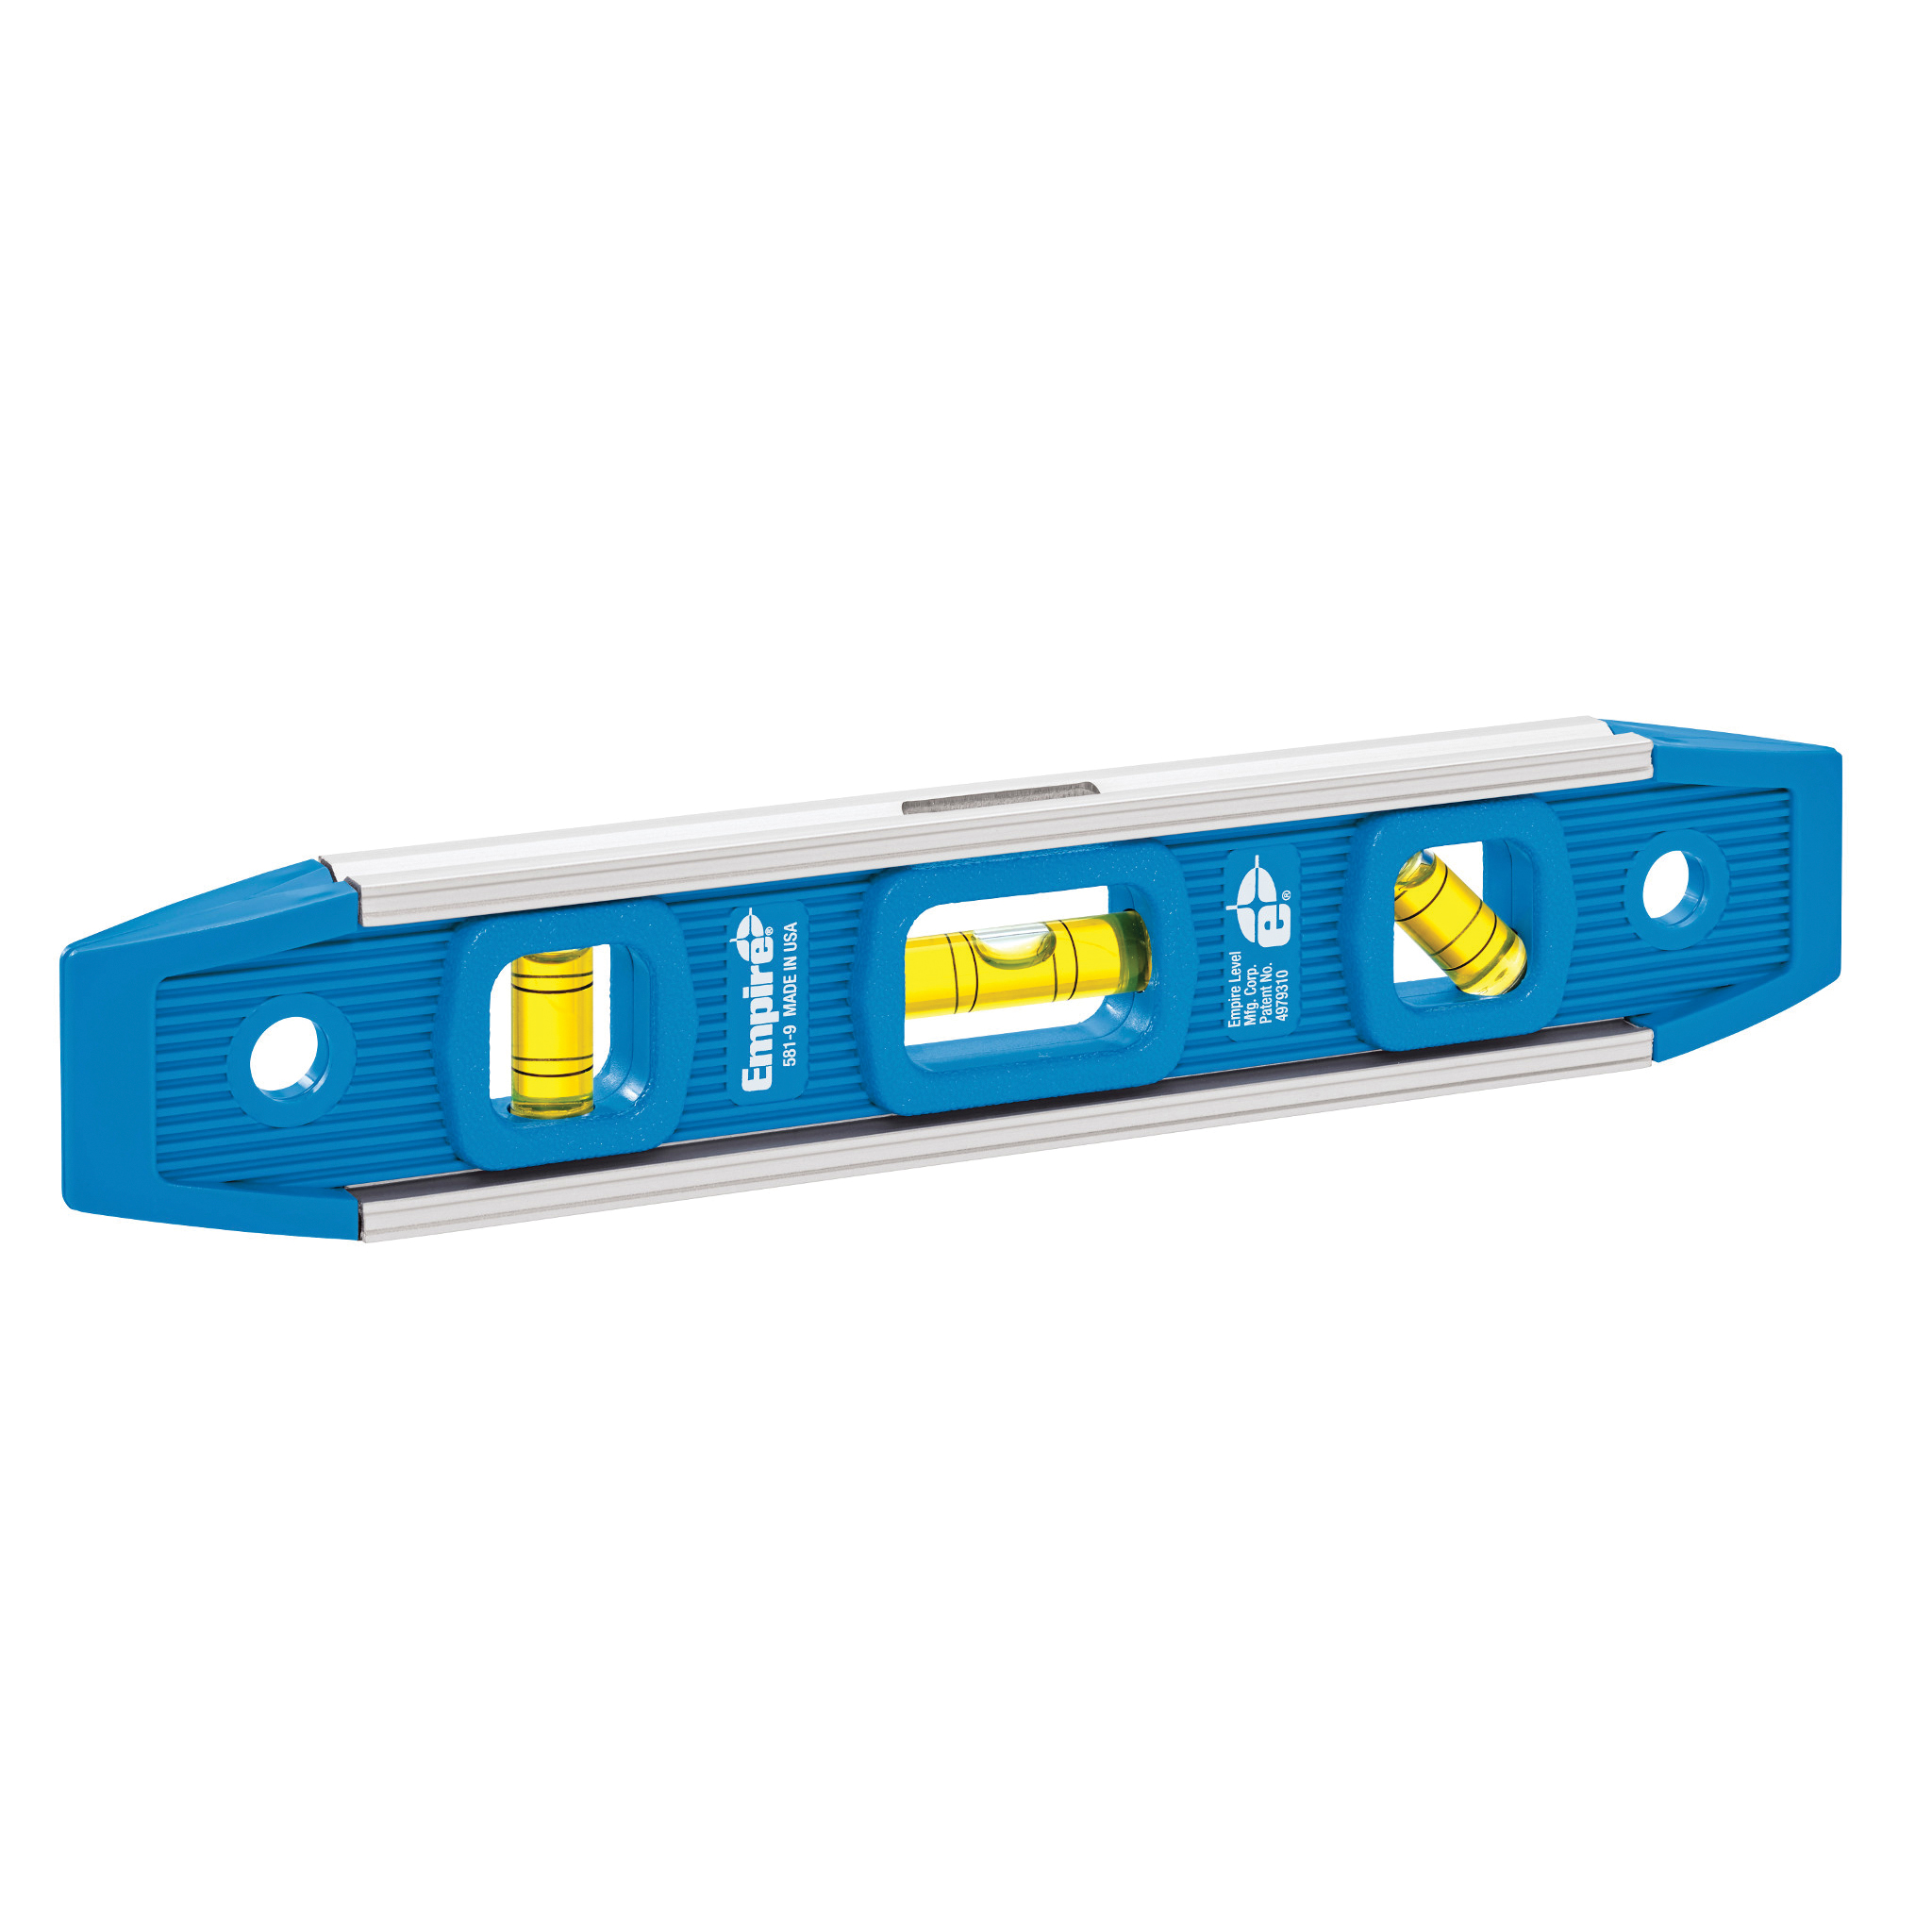 Picture of Empire 581-9 Magnetic Torpedo Level, 9 in L, 3 -Vial, Magnetic, Aluminum, Blue